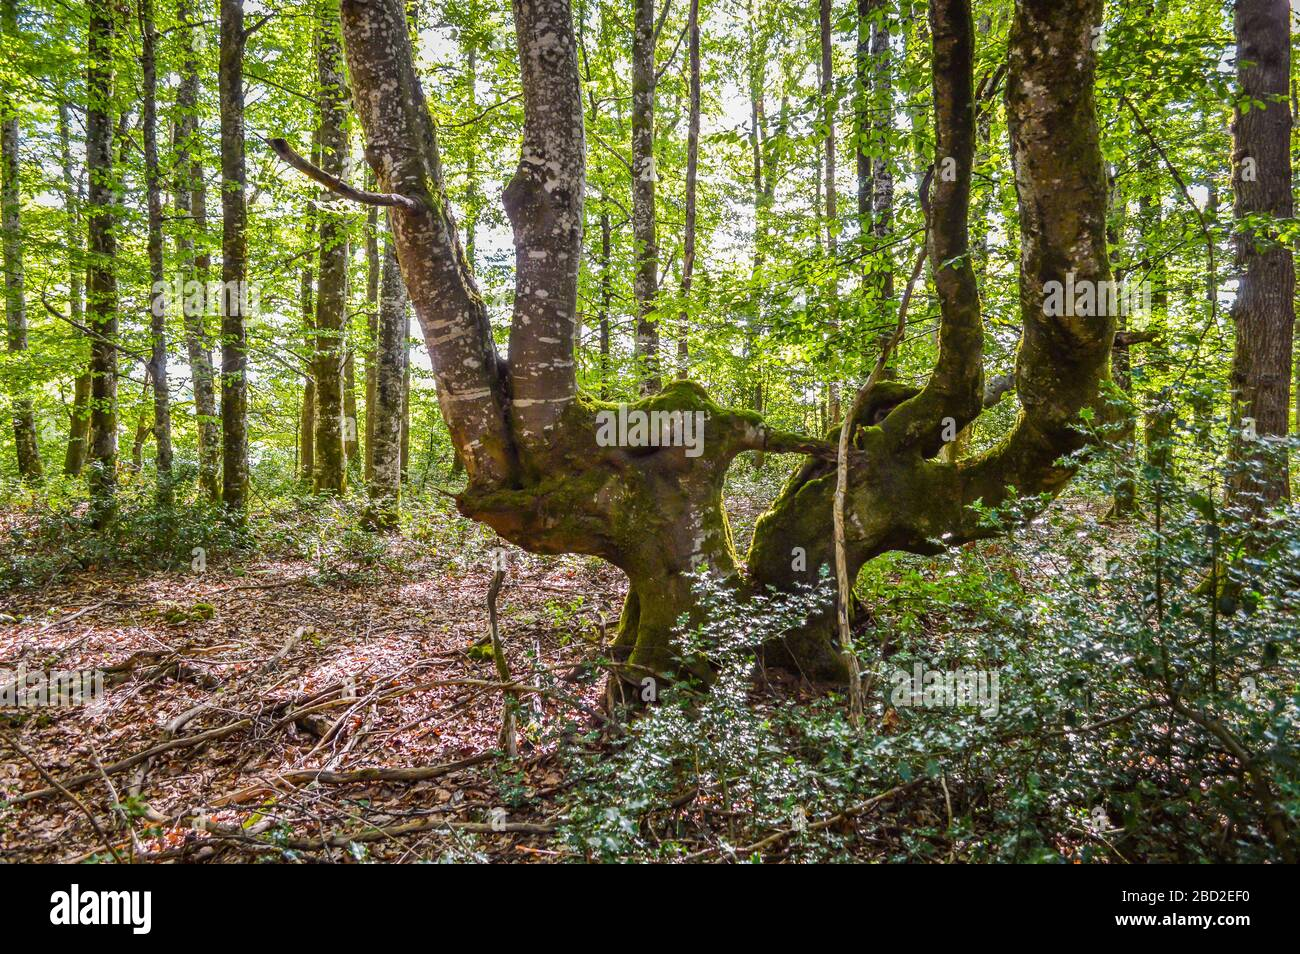 Strange shape trees in the forest, Corrèze, France. Stock Photo